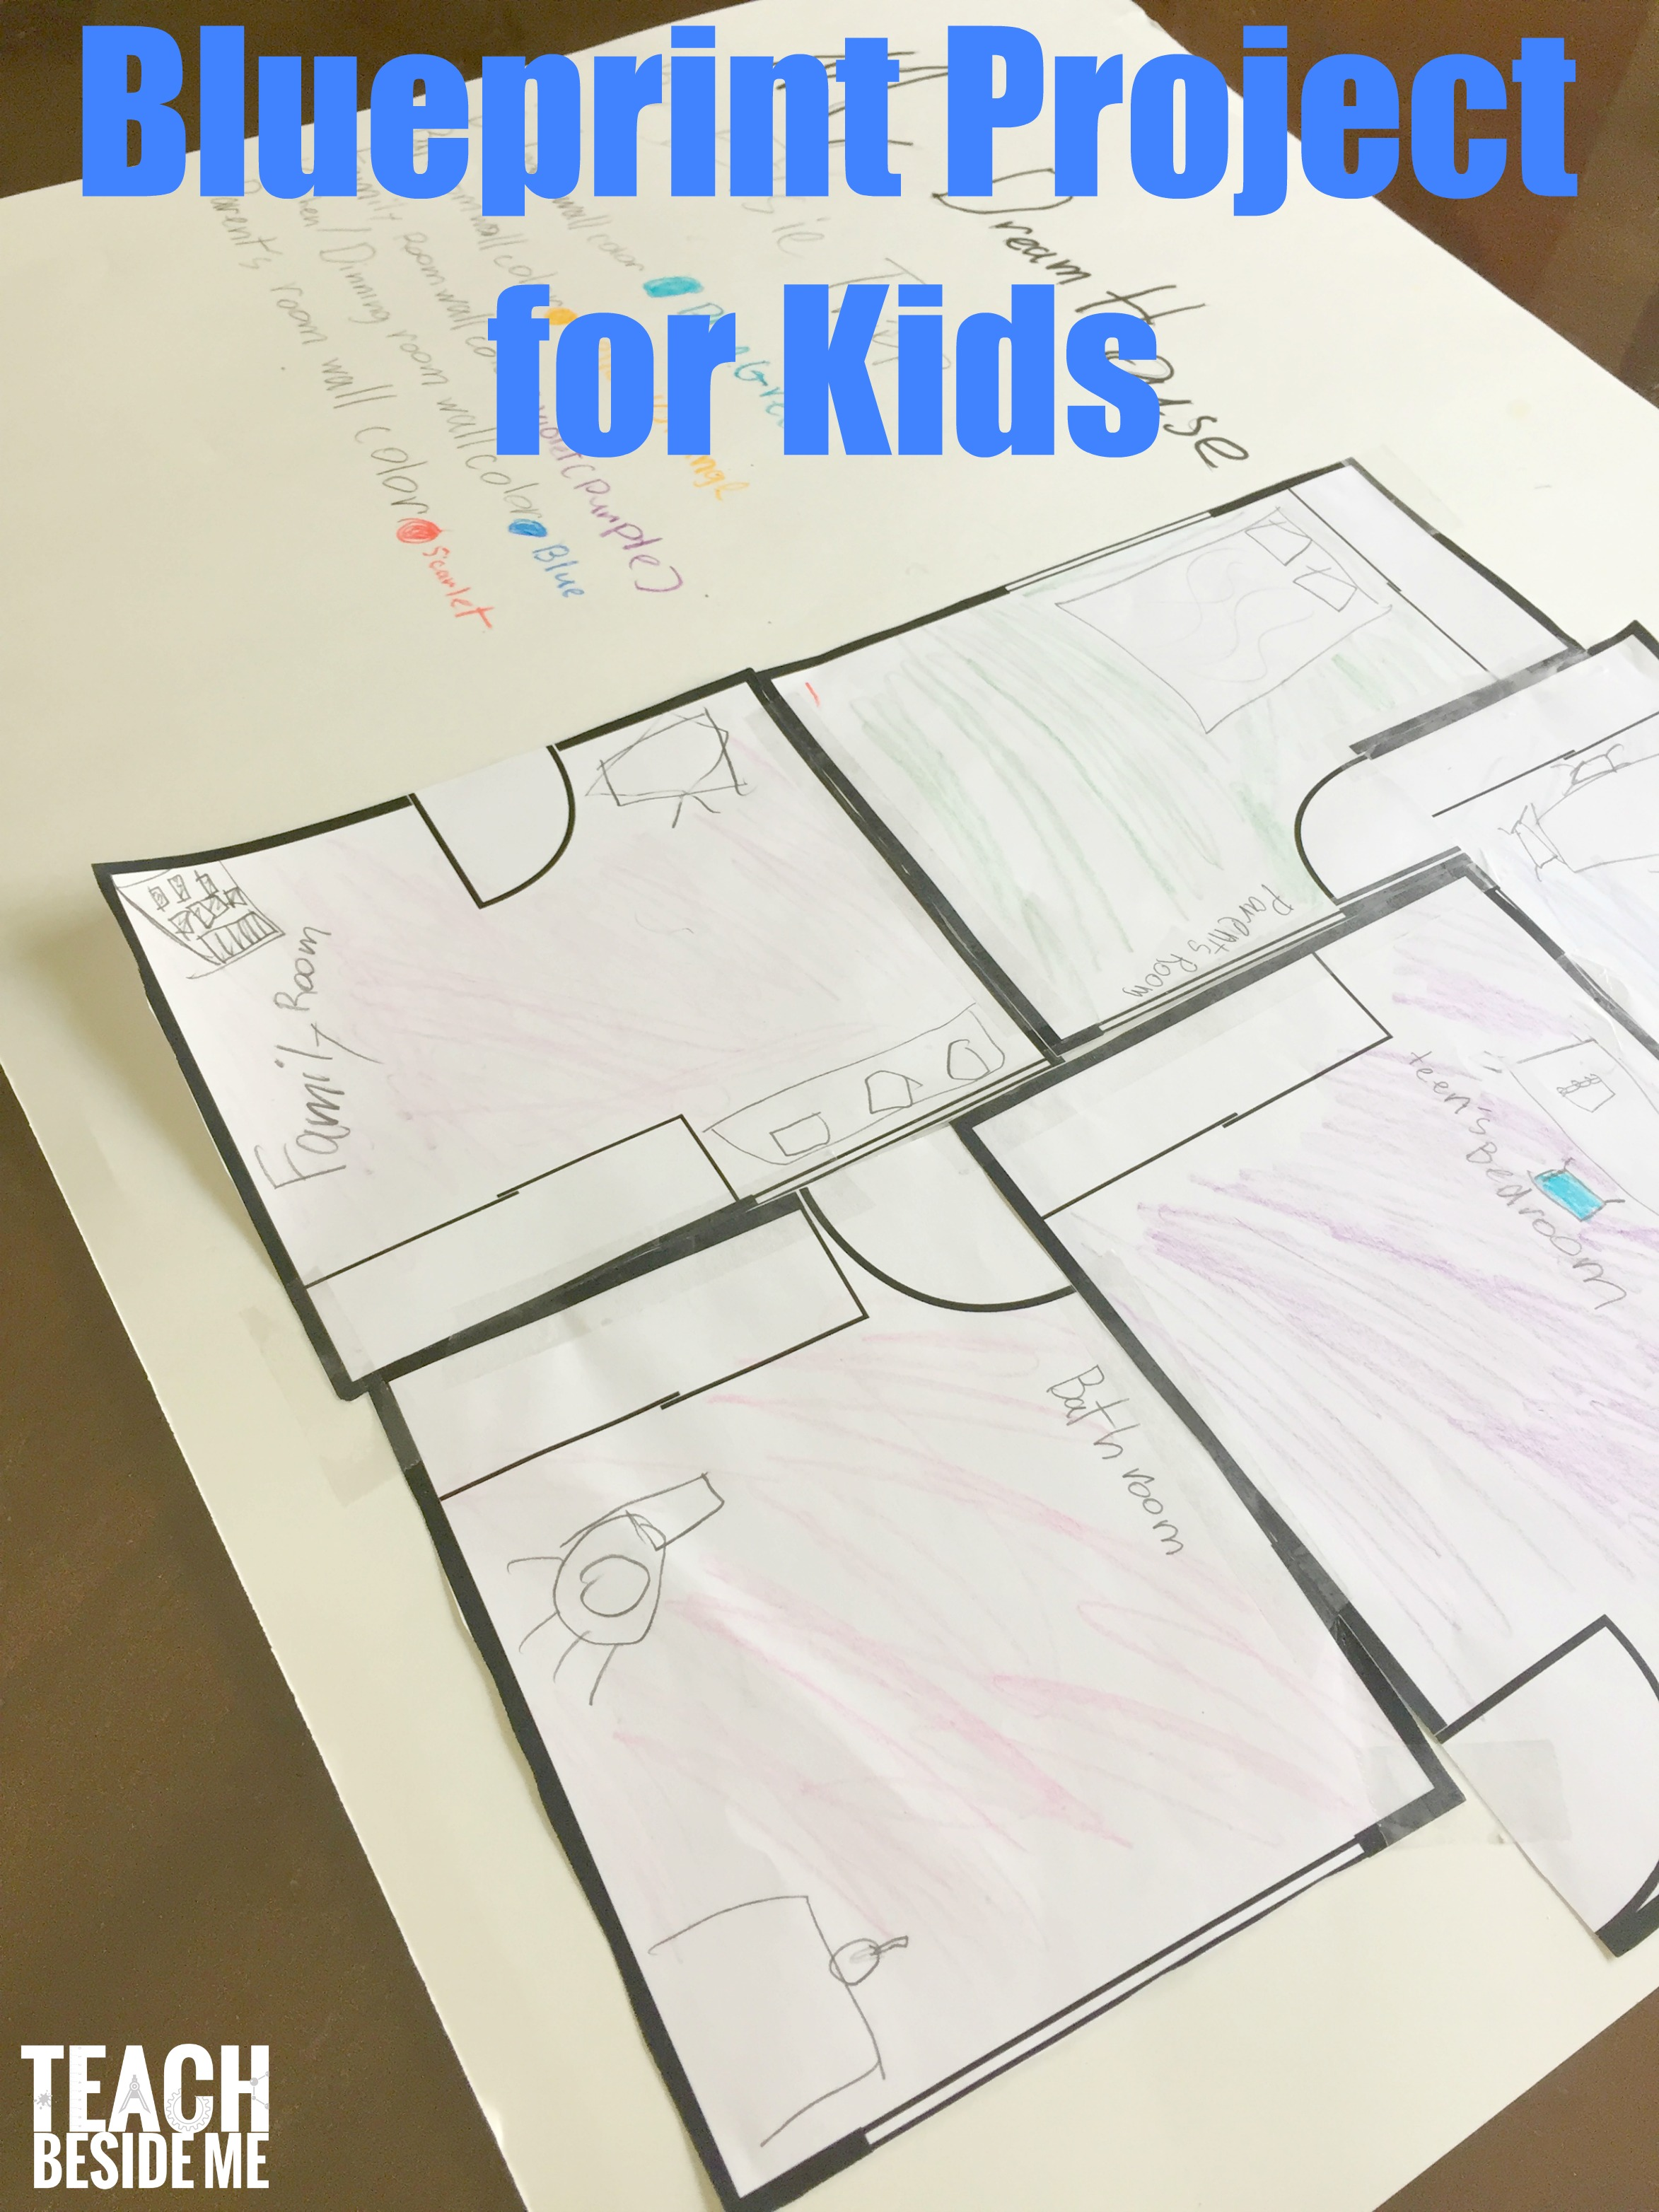 Blueprints and architecture for kids inspired by frank lloyd wright blueprints and architecture for kids inspired by frank lloyd wright teach beside me malvernweather Image collections